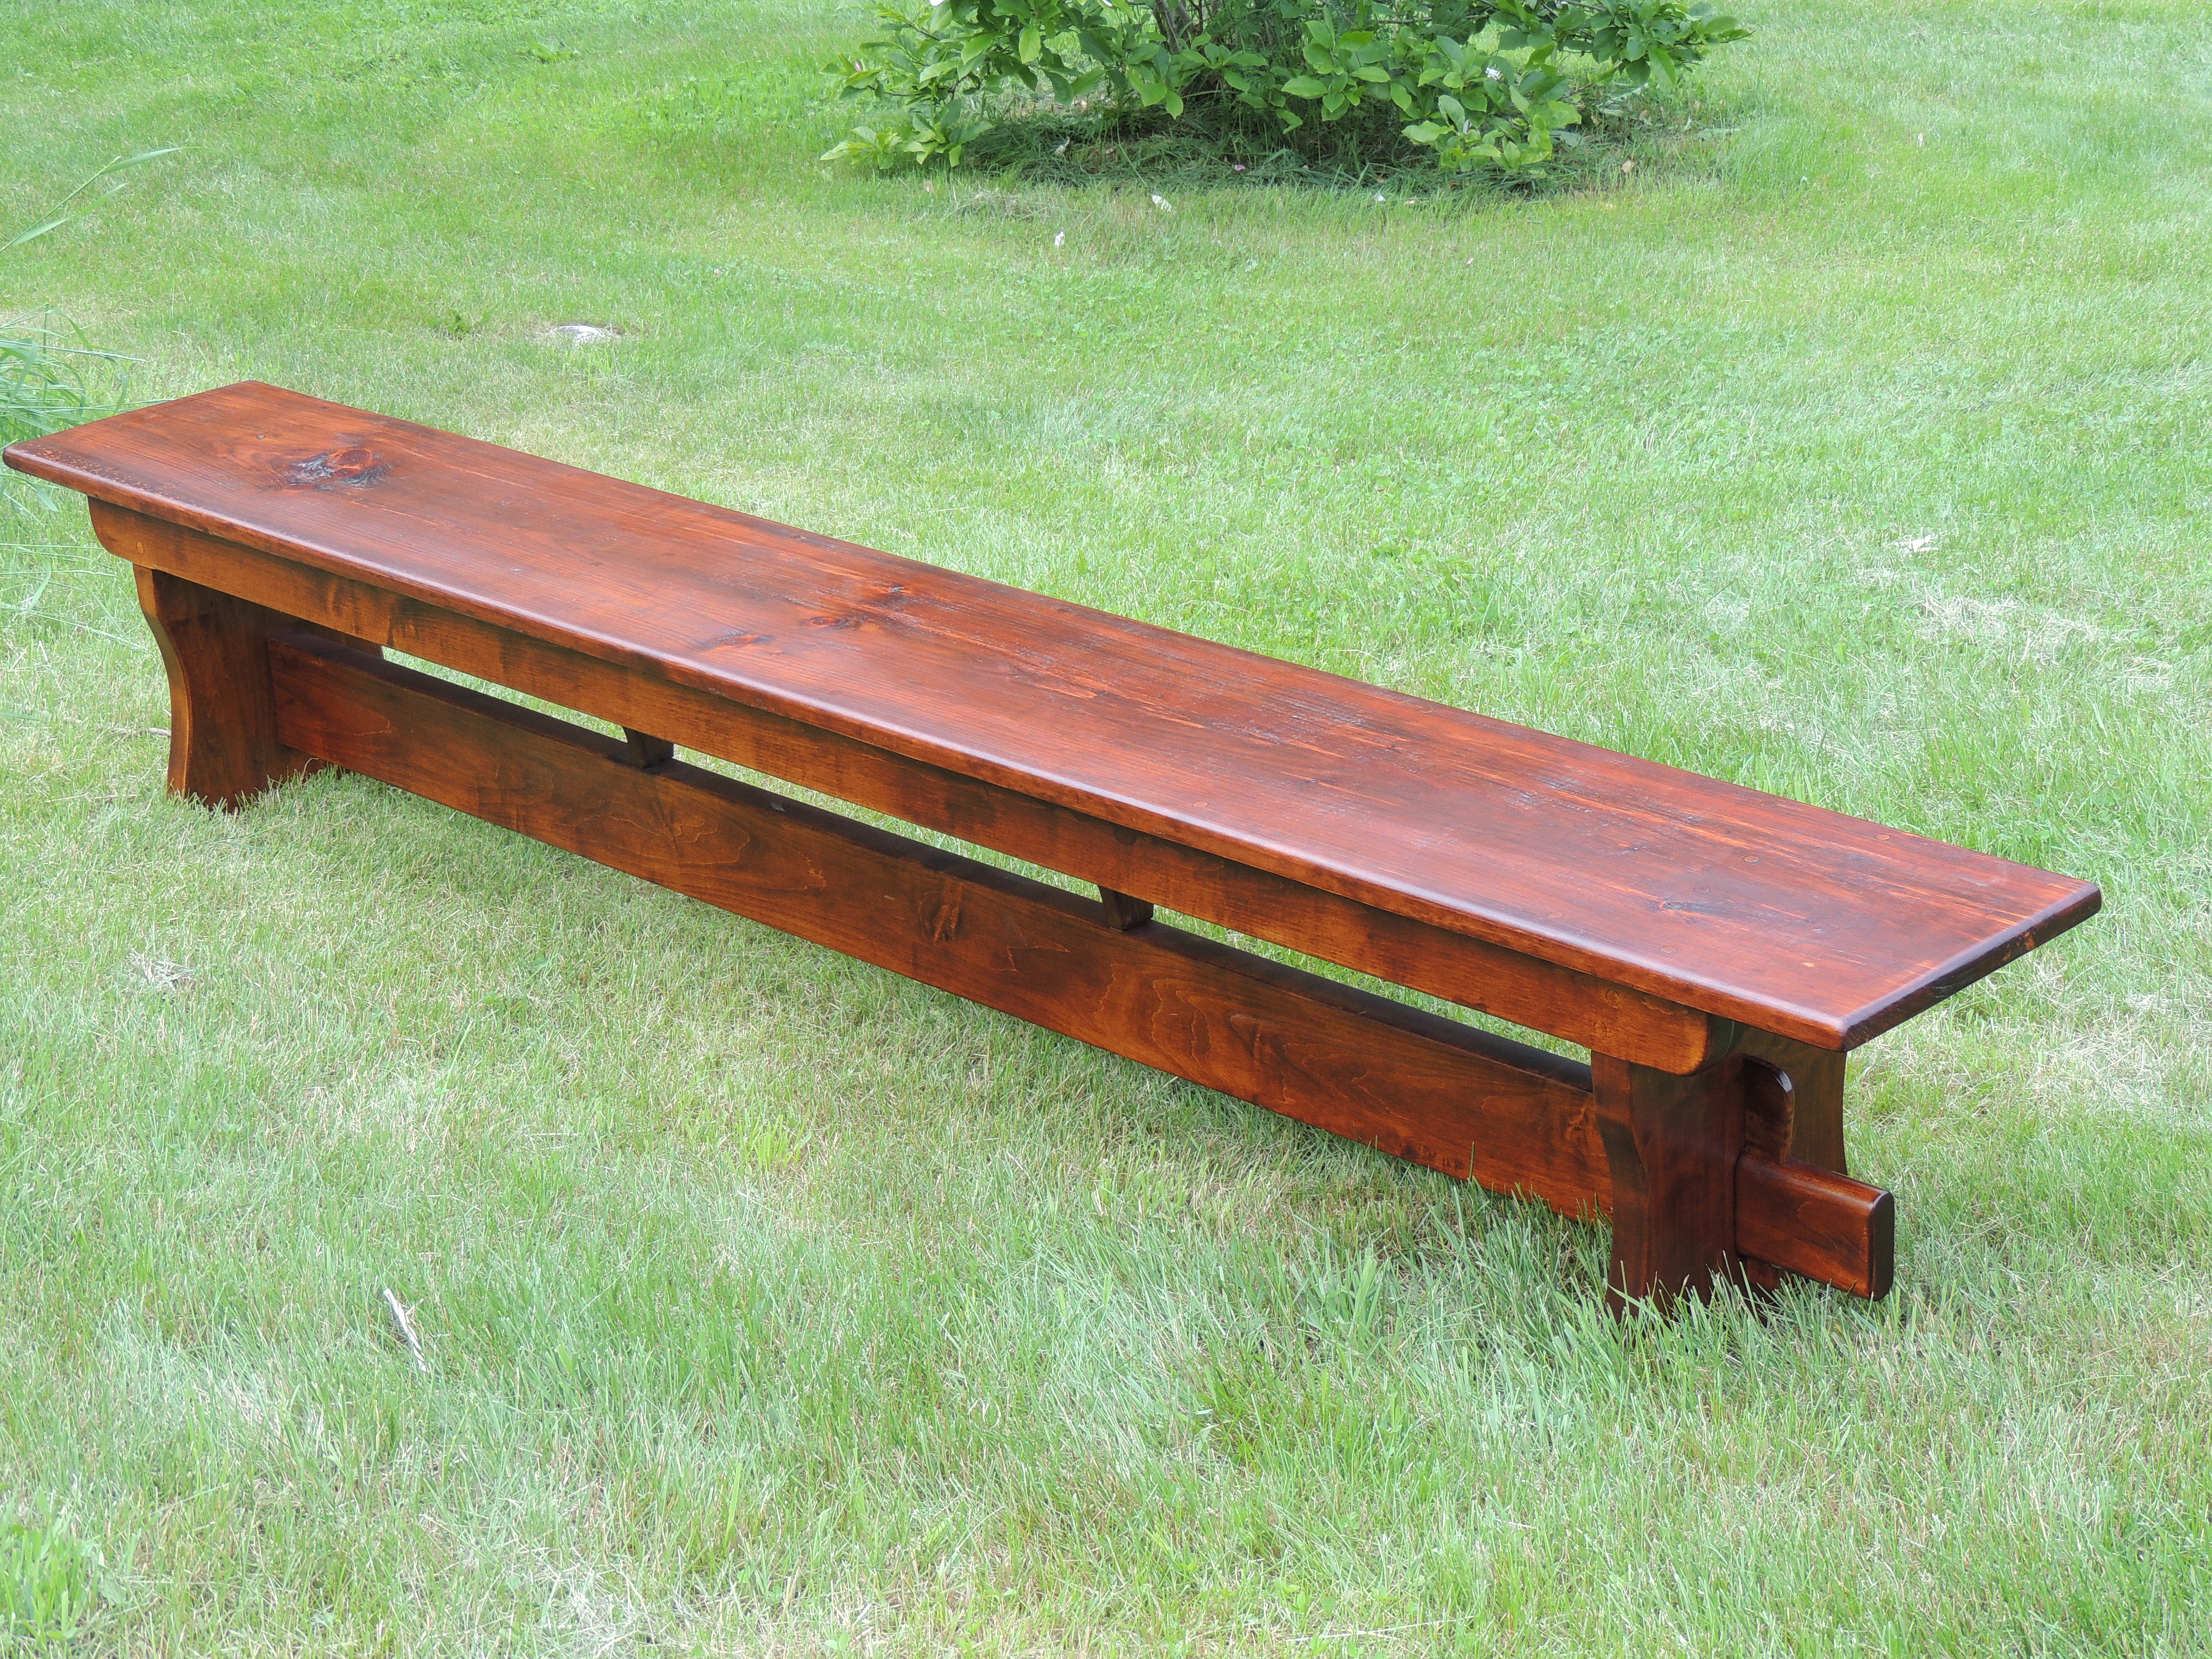 Wood farm tables new england joinery essex ma 9ft bench